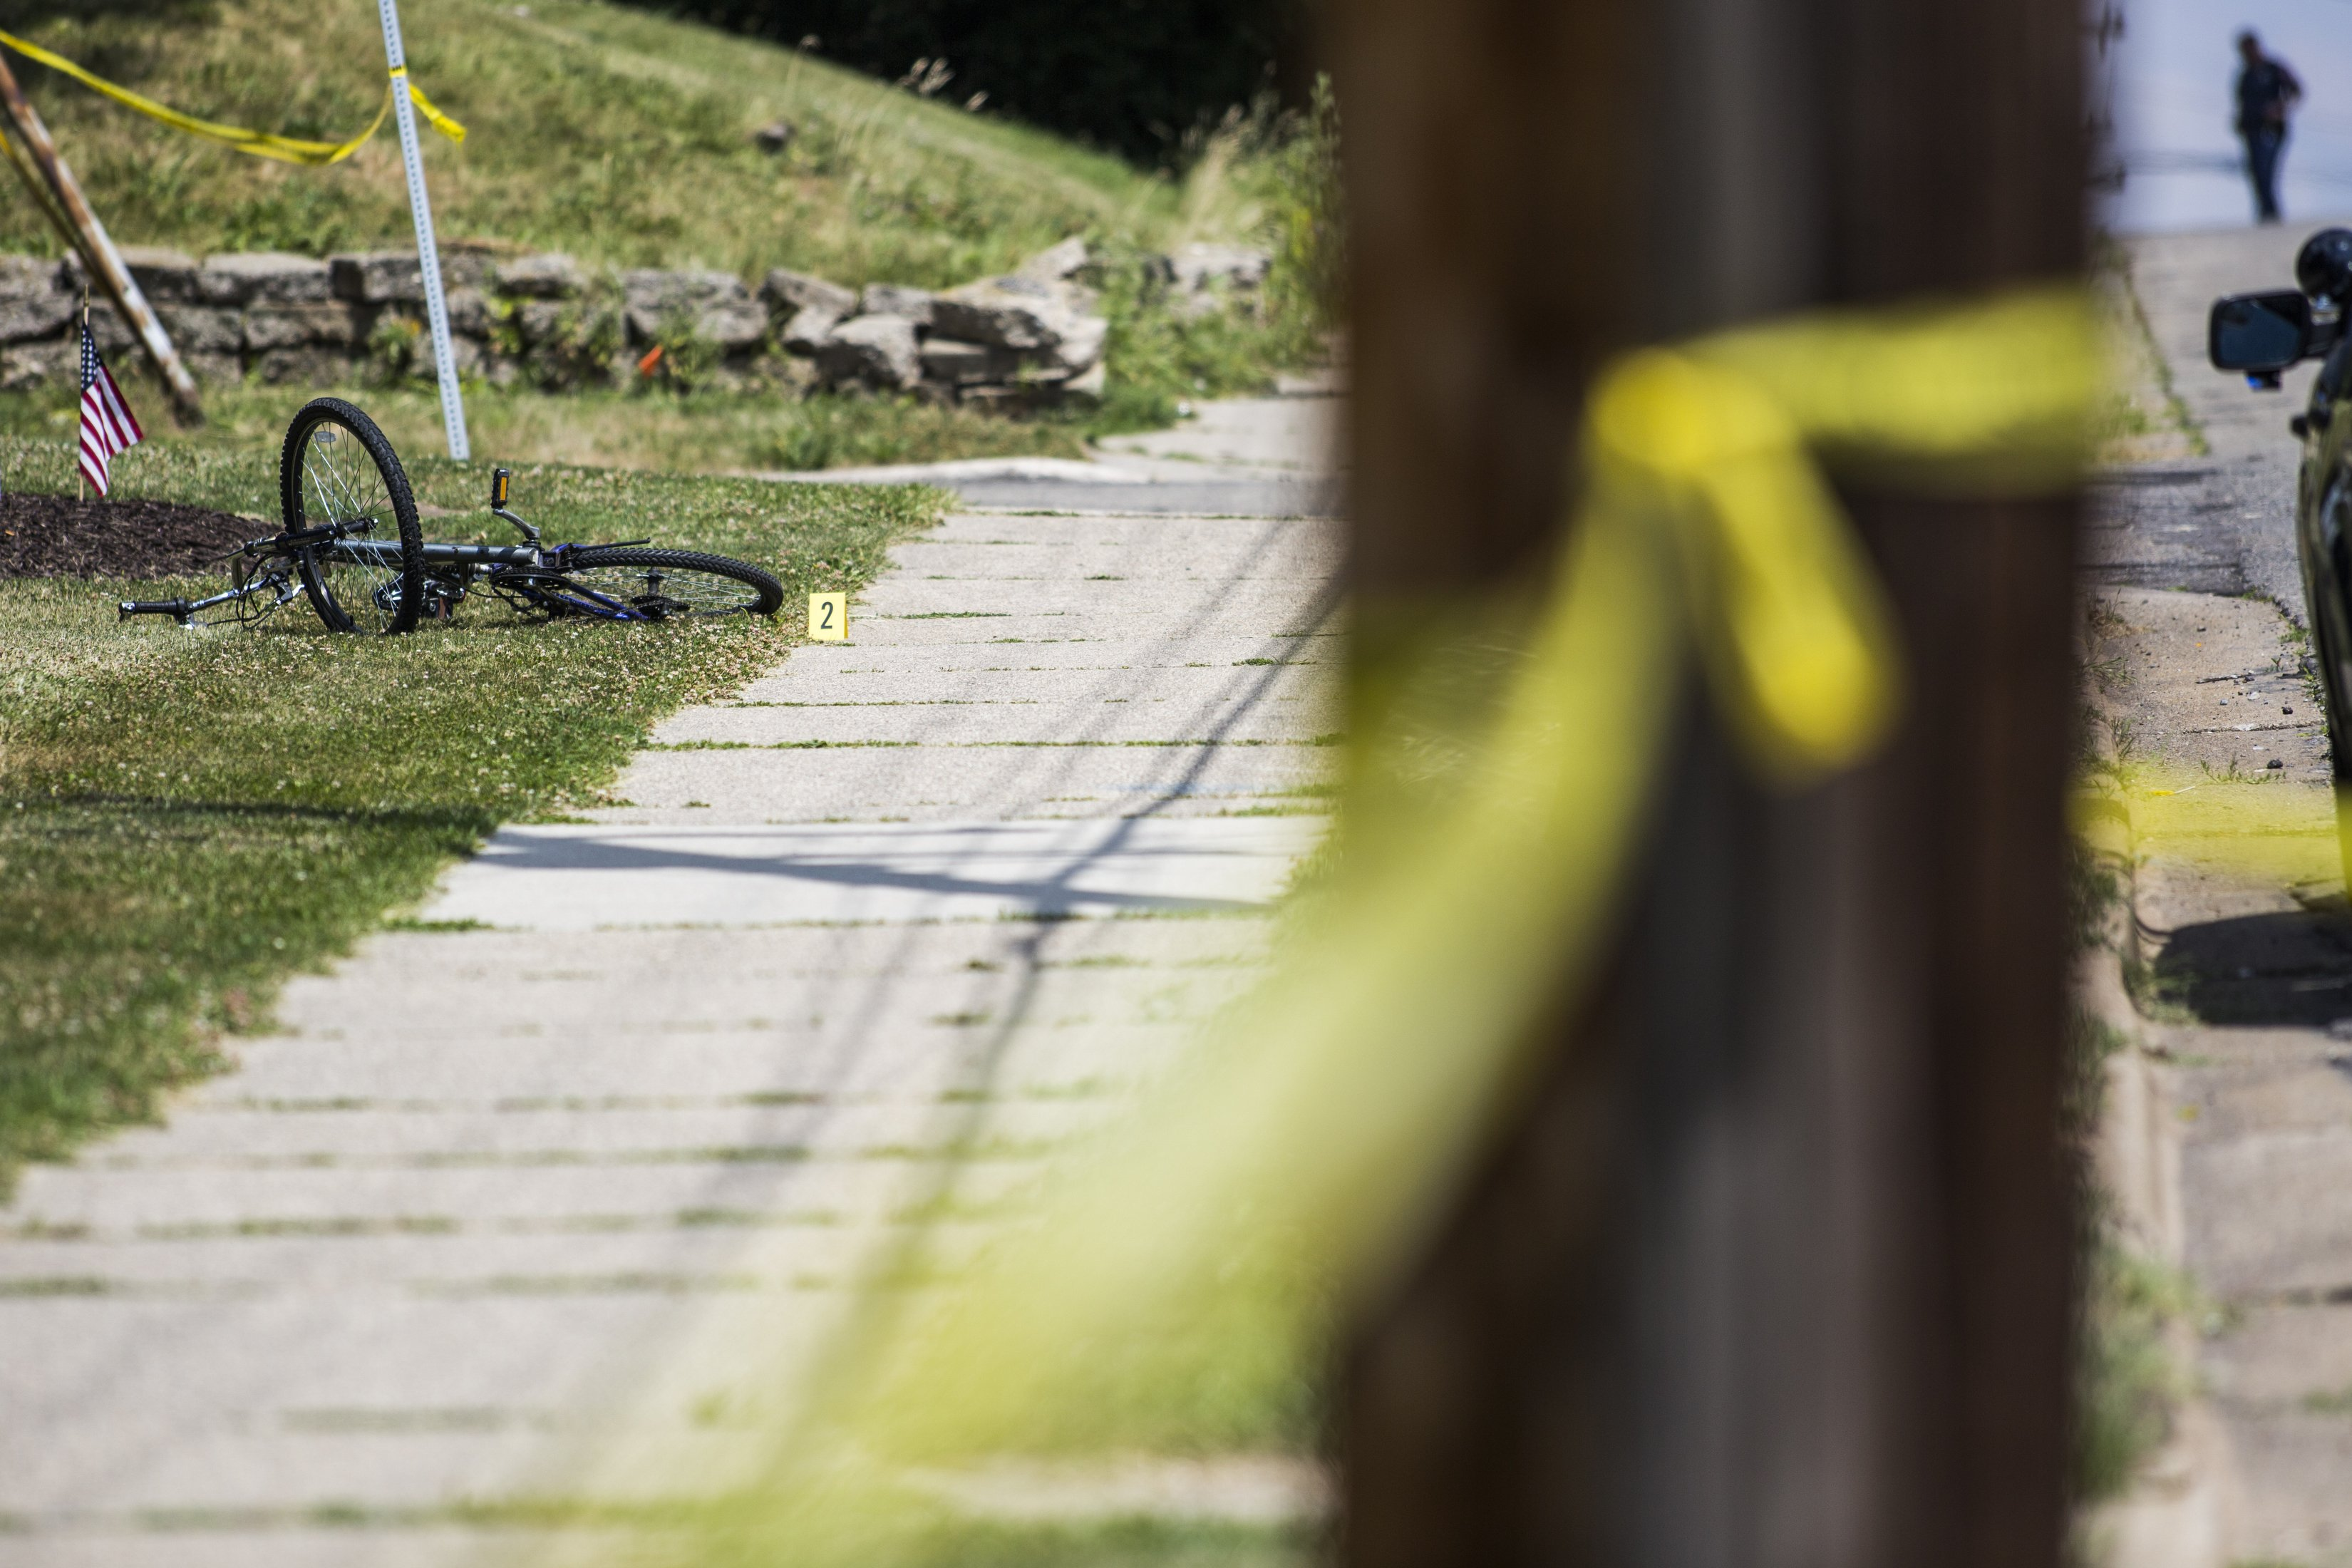 A bike is marked as evidence at the scene of a shooting on June 30, 2016 in Grand Rapids, Mich. In one of the worst periods of violence in 2020 for the city, 11 people were shot across the weekend of Sept. 12 and 13. Grand Rapids police responded by placing over 100 officers on the streets the following weekend, during which they collected 10 illegal weapons and made 16 felony arrests.